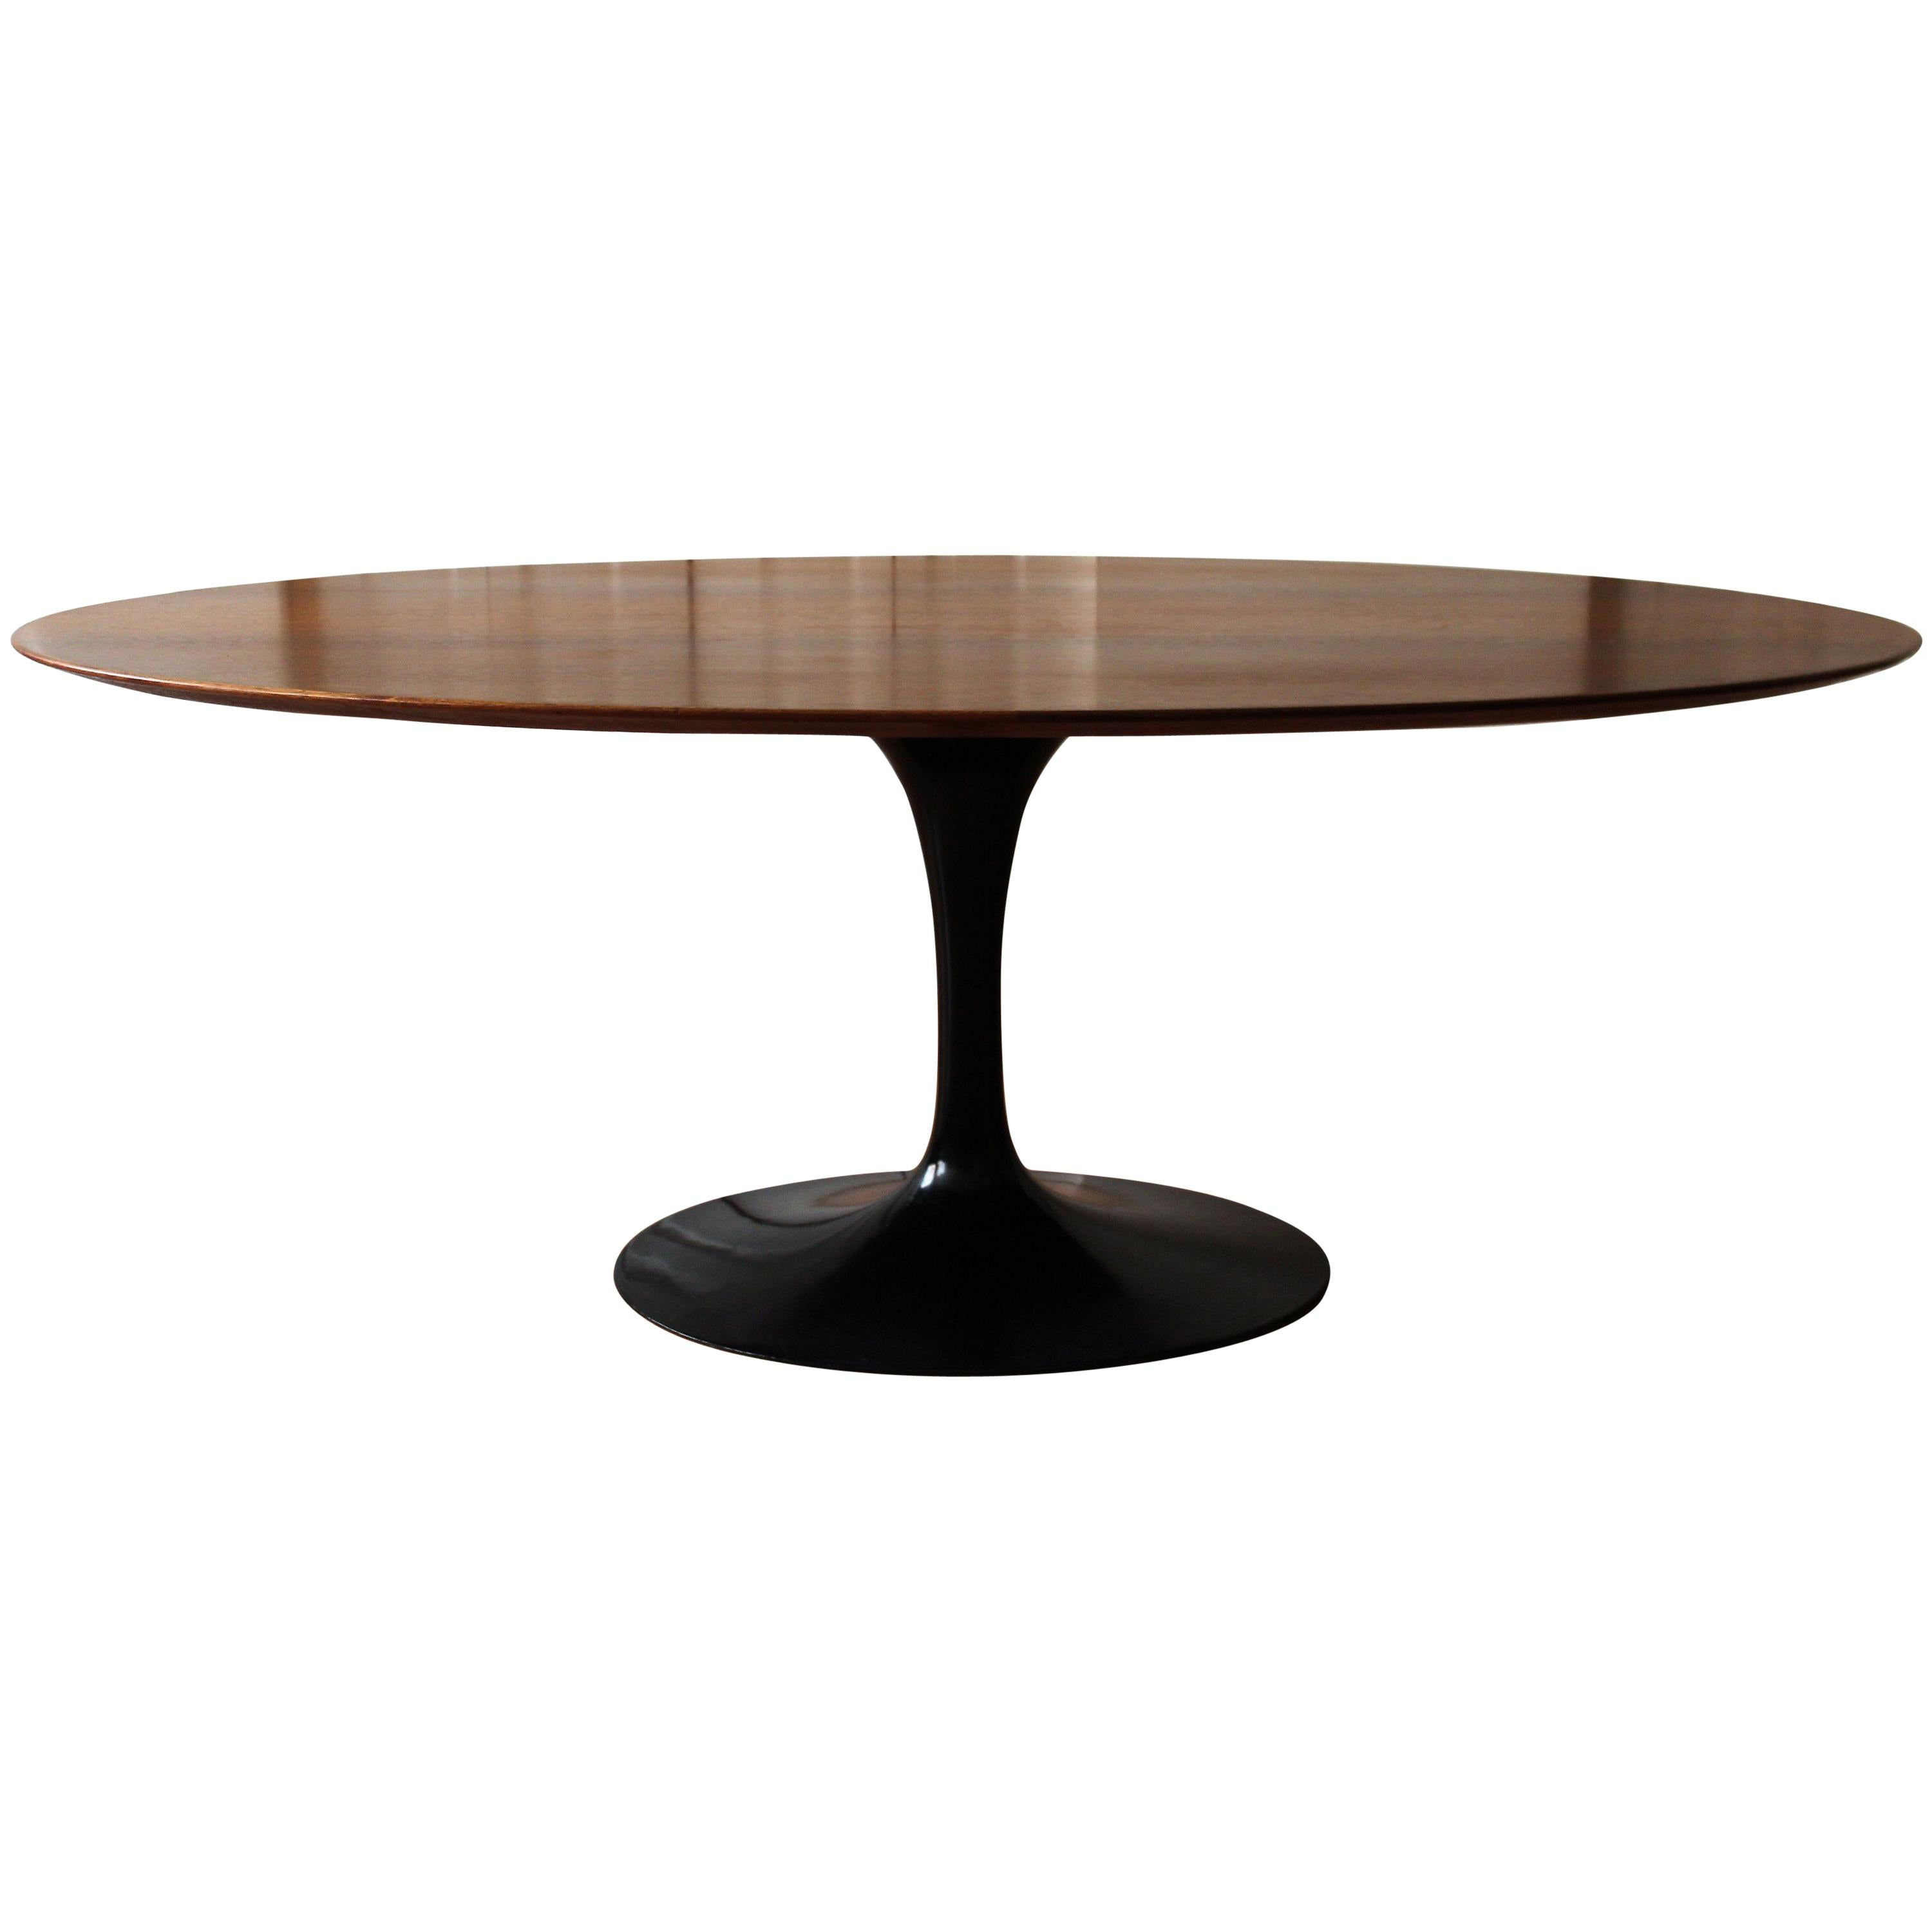 Walnut Oval Tulip Table By Eero Saarinen For Knoll